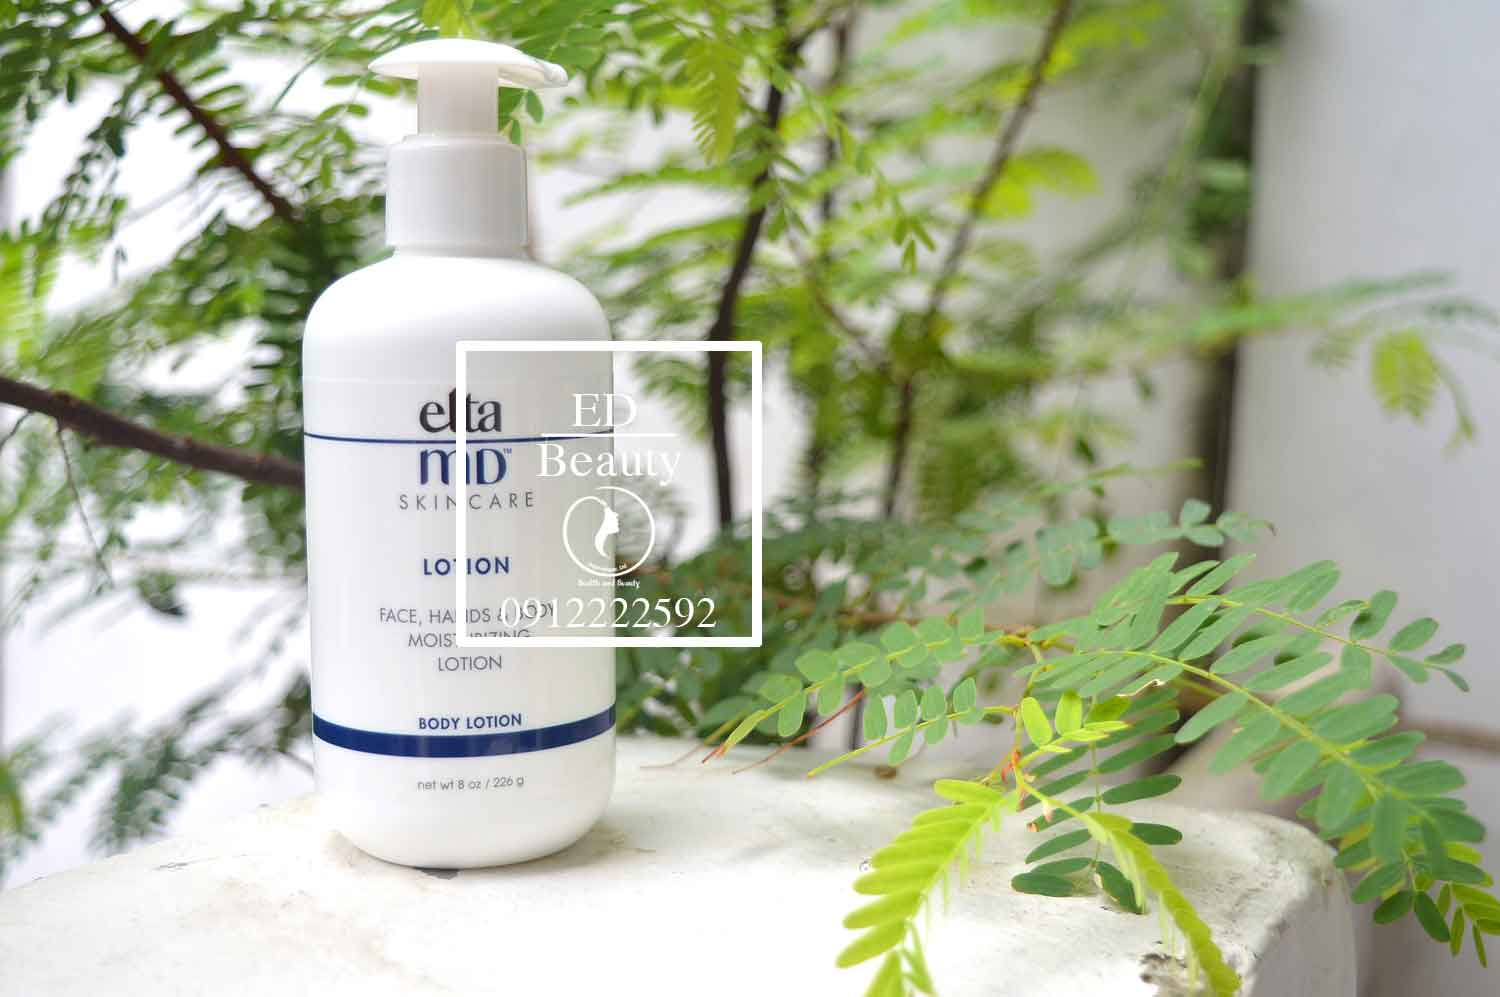 kem-duong-the-eltamd-lotion-324